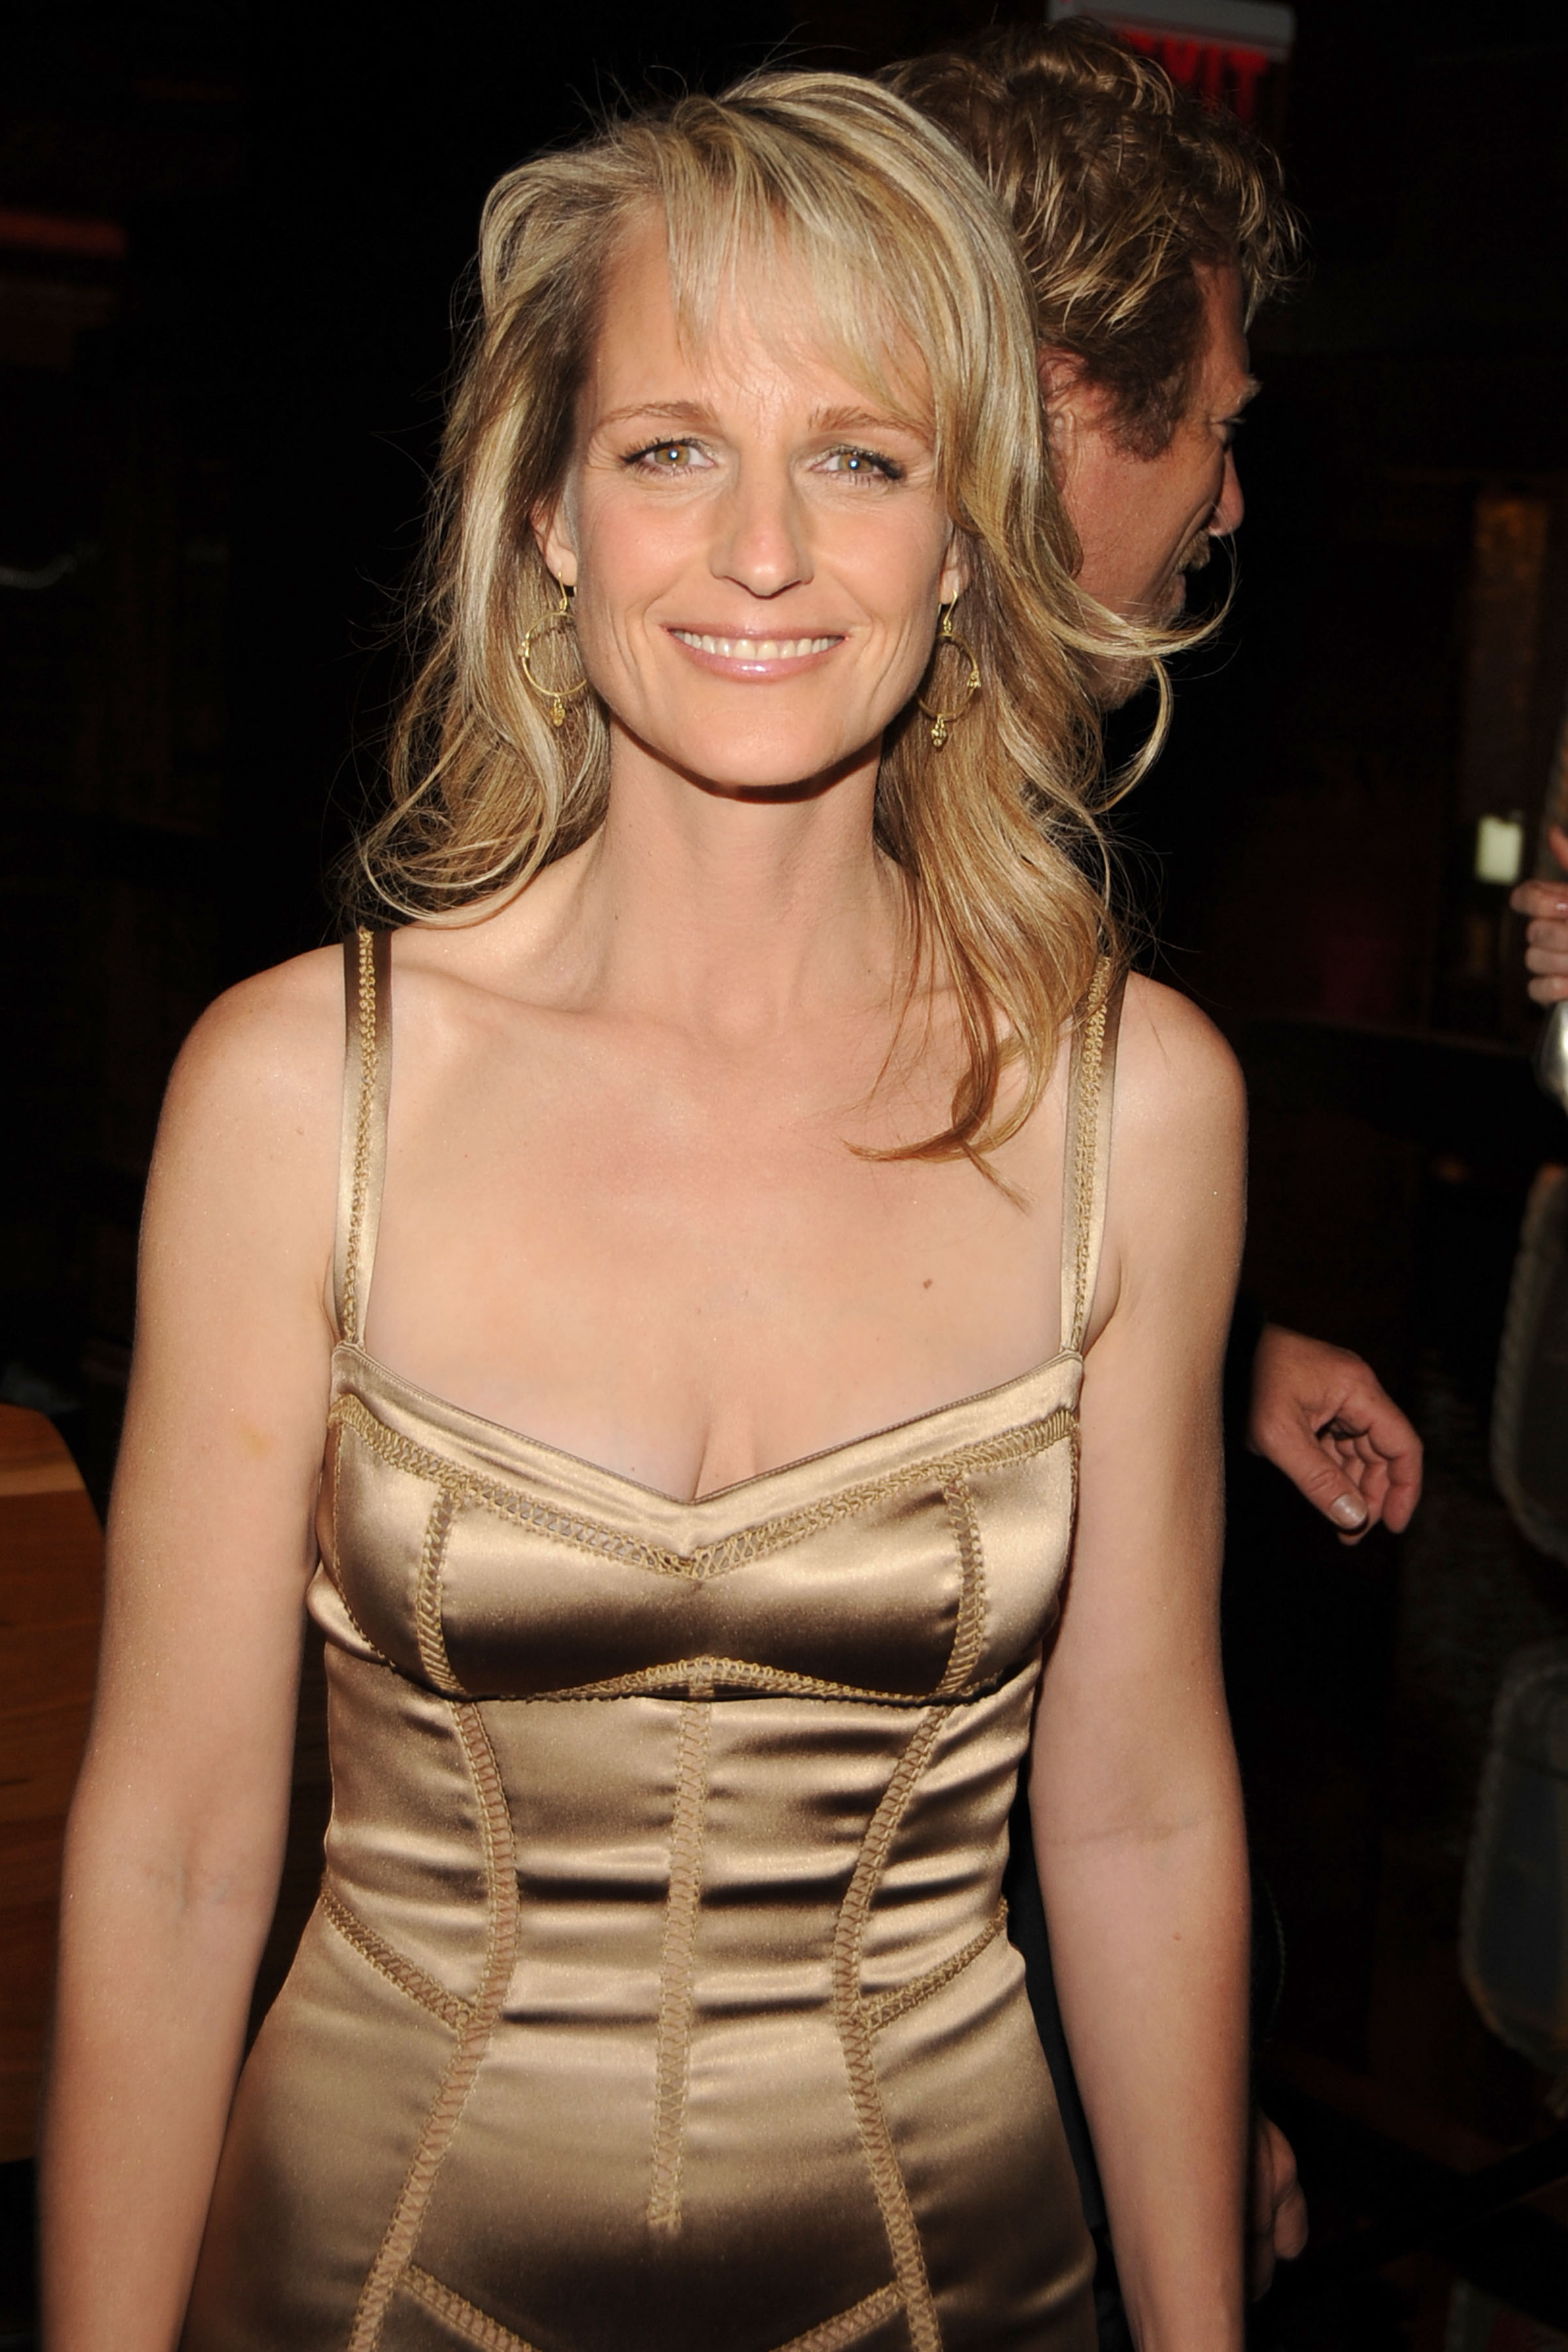 helen hunt images 180then she found me180 afterparty hd